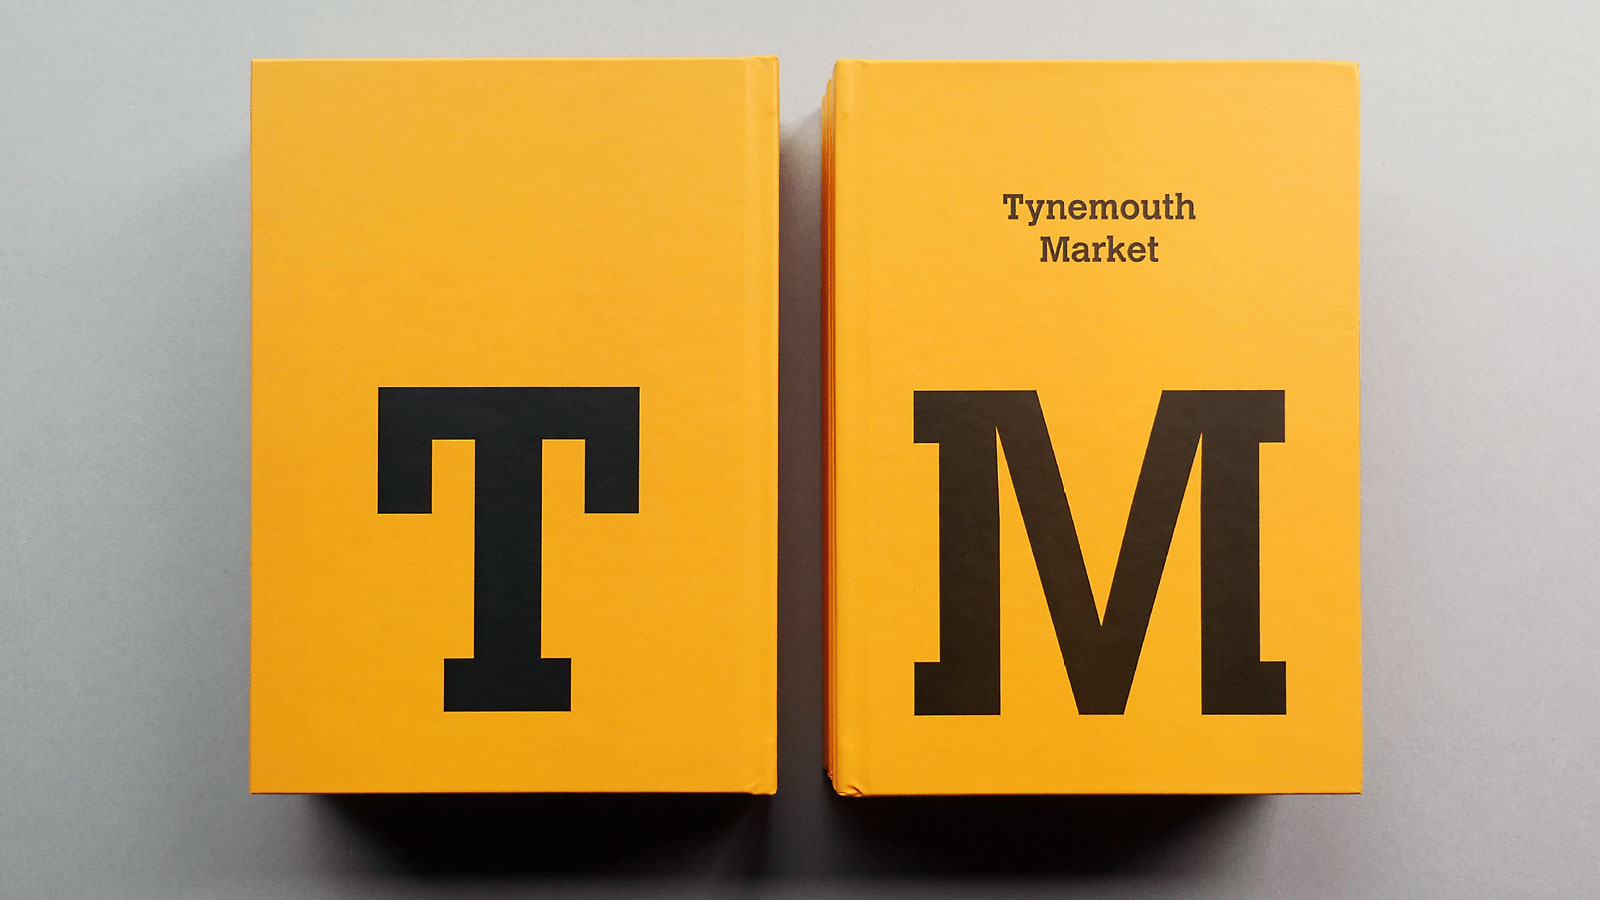 photography-design-picture-book-hard-case-bound-typography-covers-milton-keynes-london